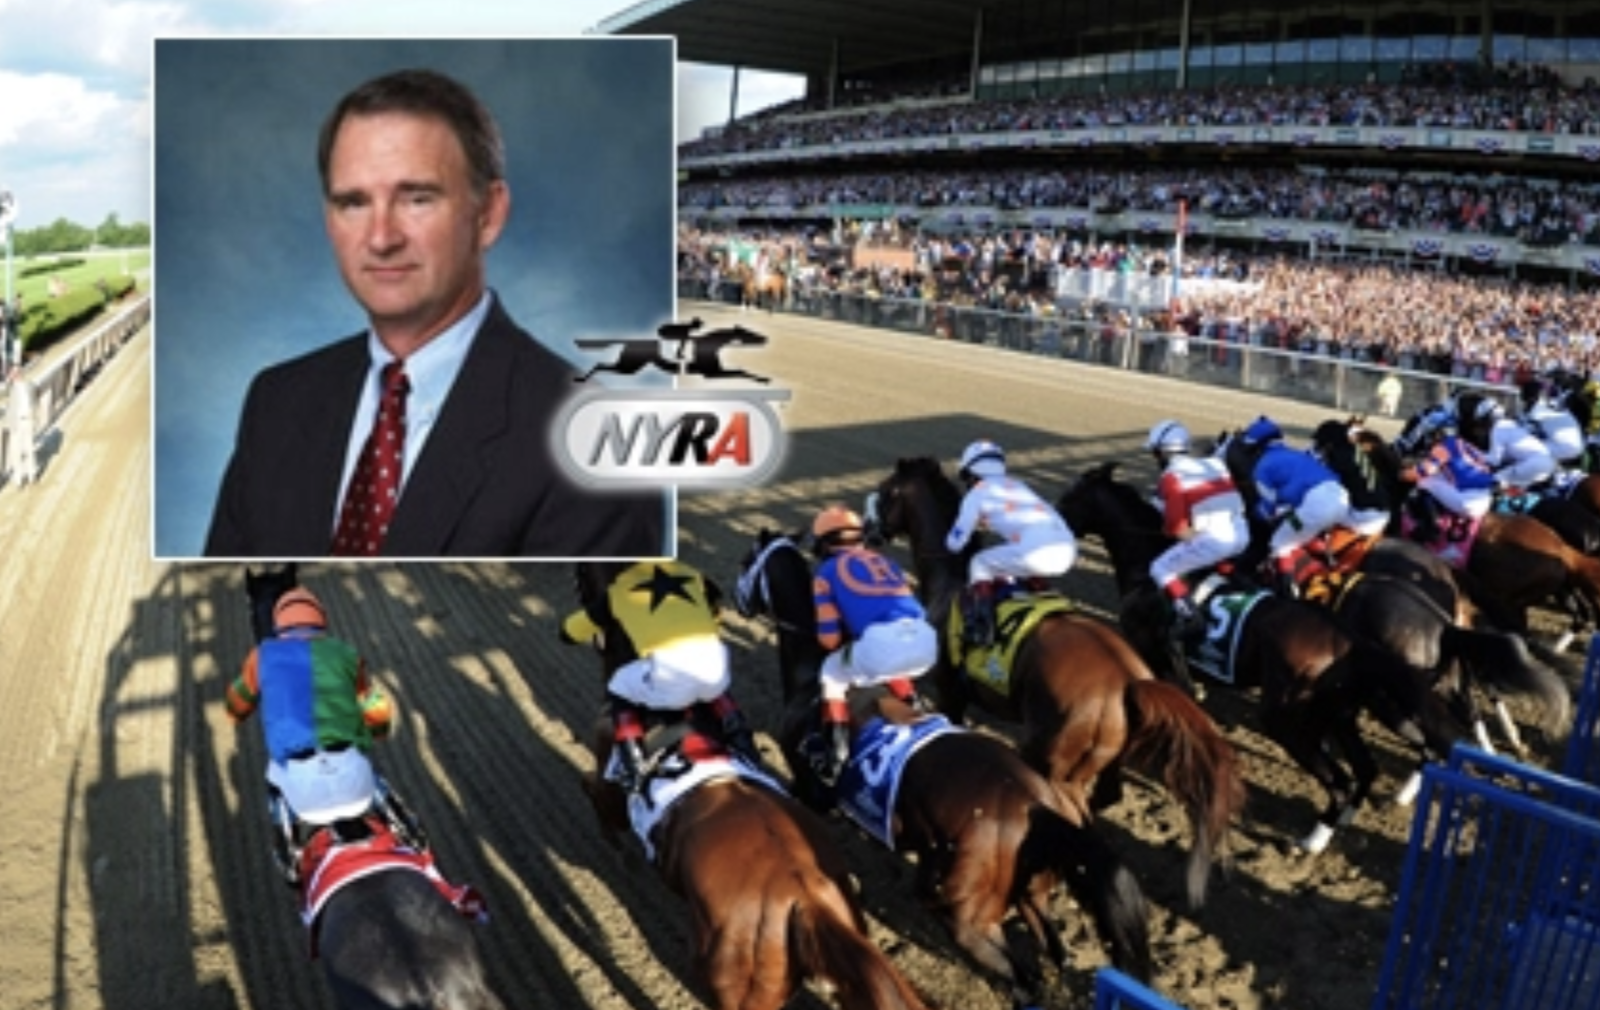 NYRA CEO Asked to Resign After Using Maintenance Workers For His Own Home